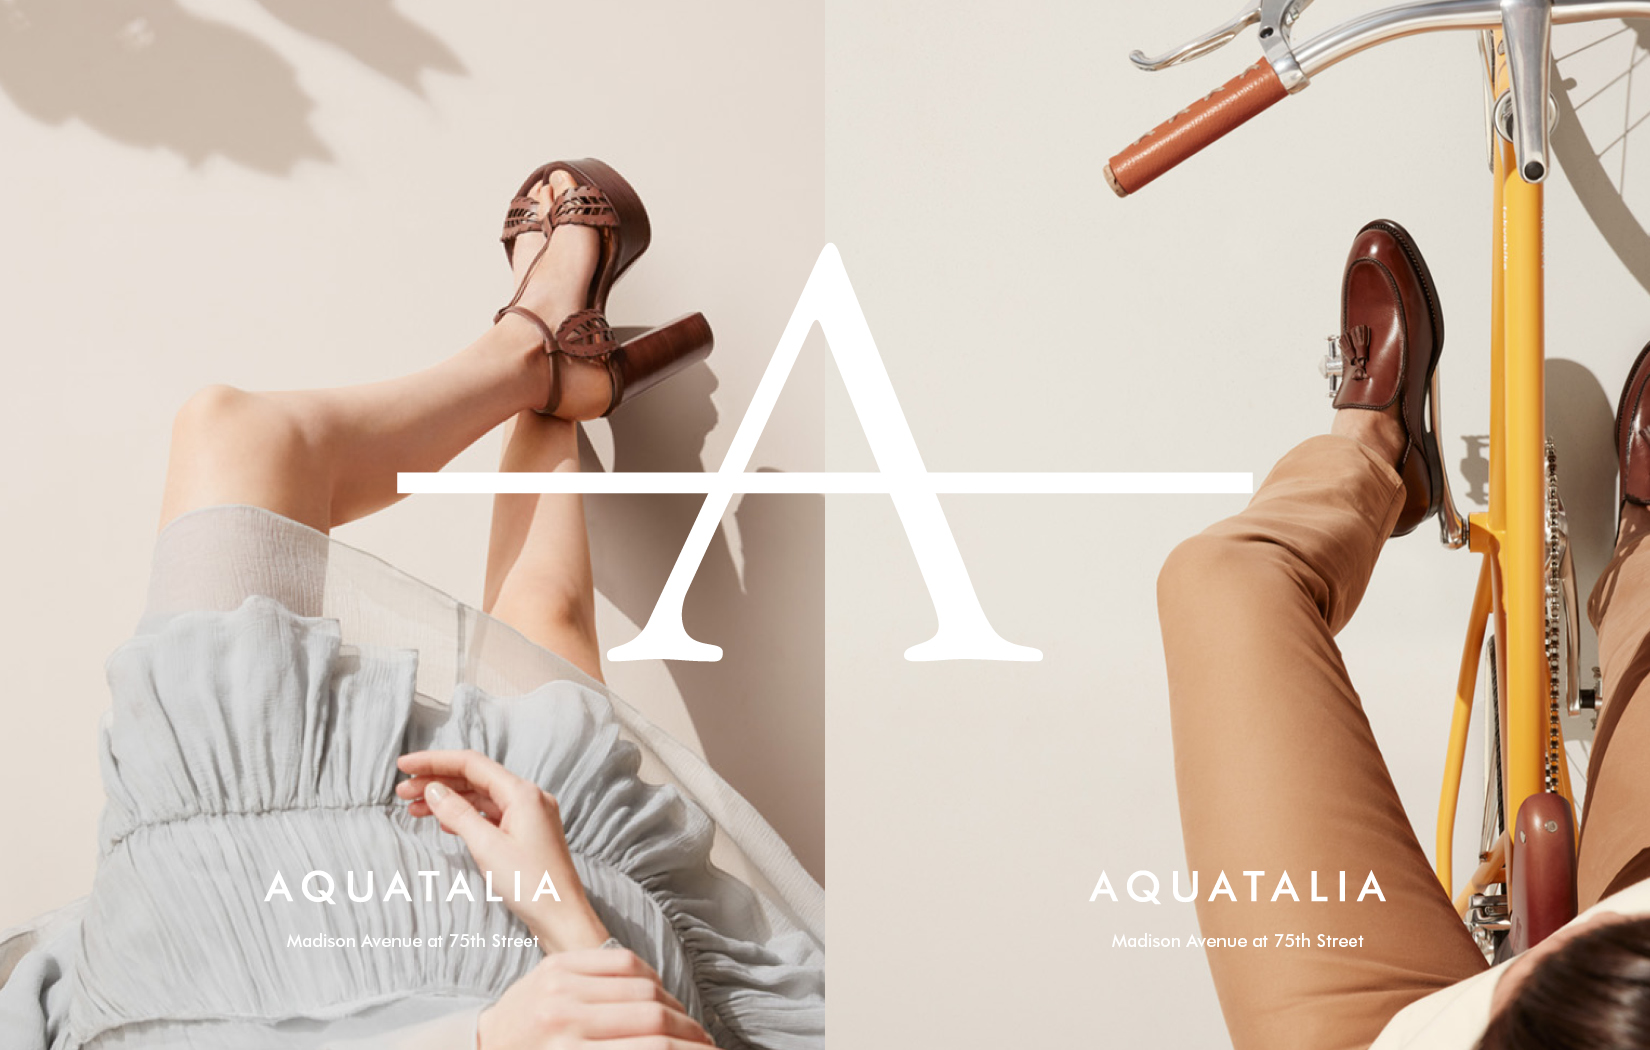 DTE Studio created and lead the creative direction for Aquatalia's print campaign.